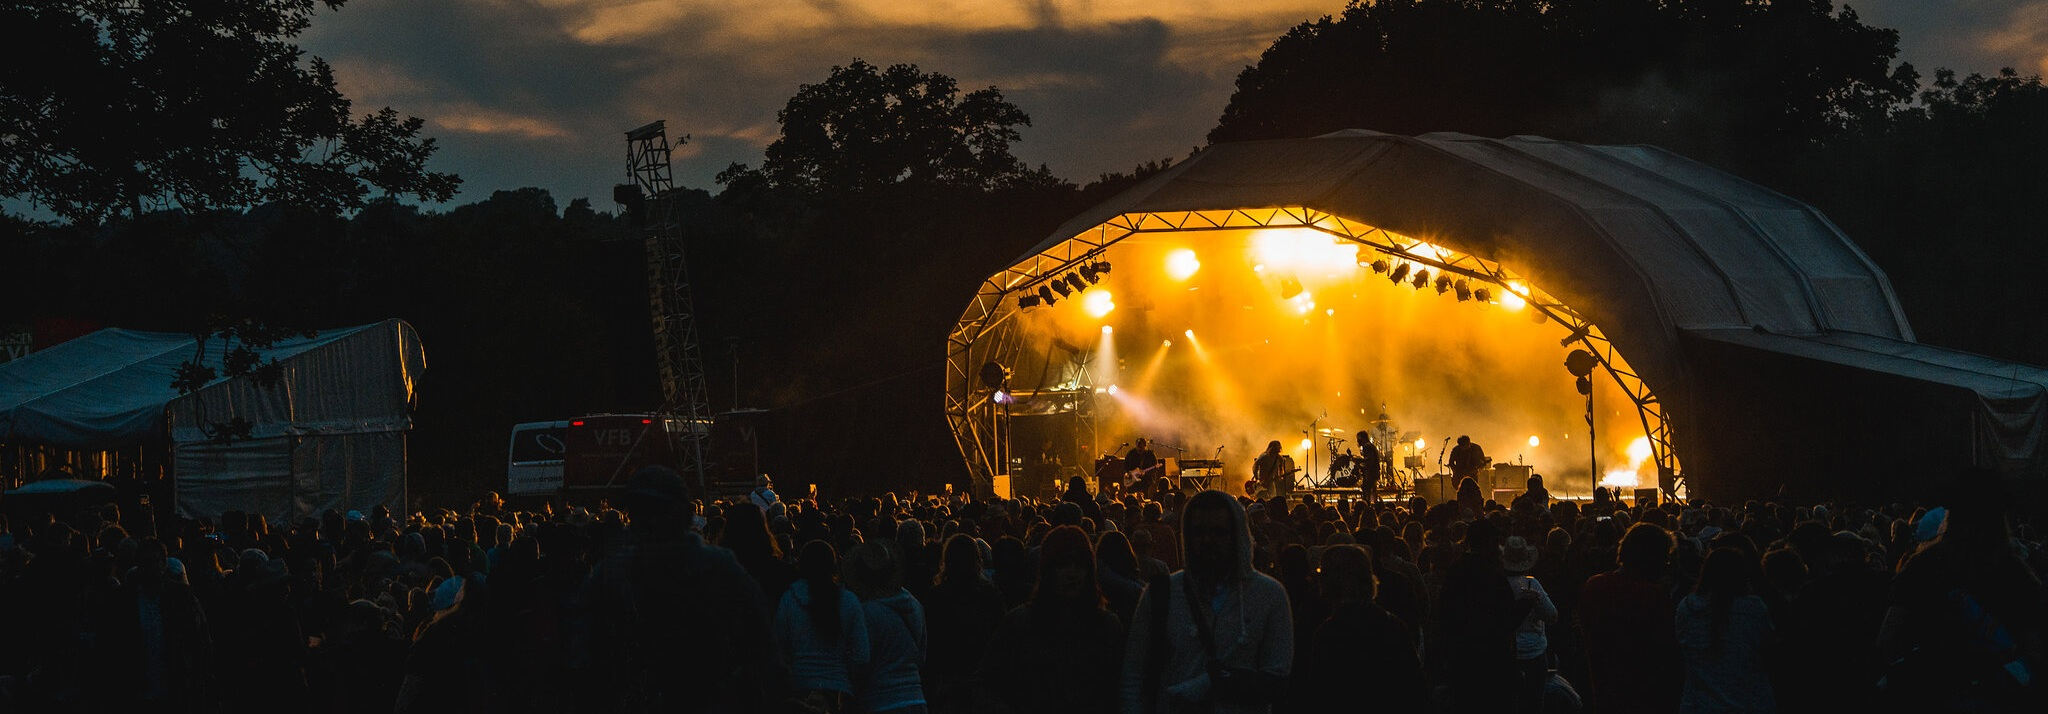 Main Stage, Black Deer 2019 - Photo by Ania Shrimpton